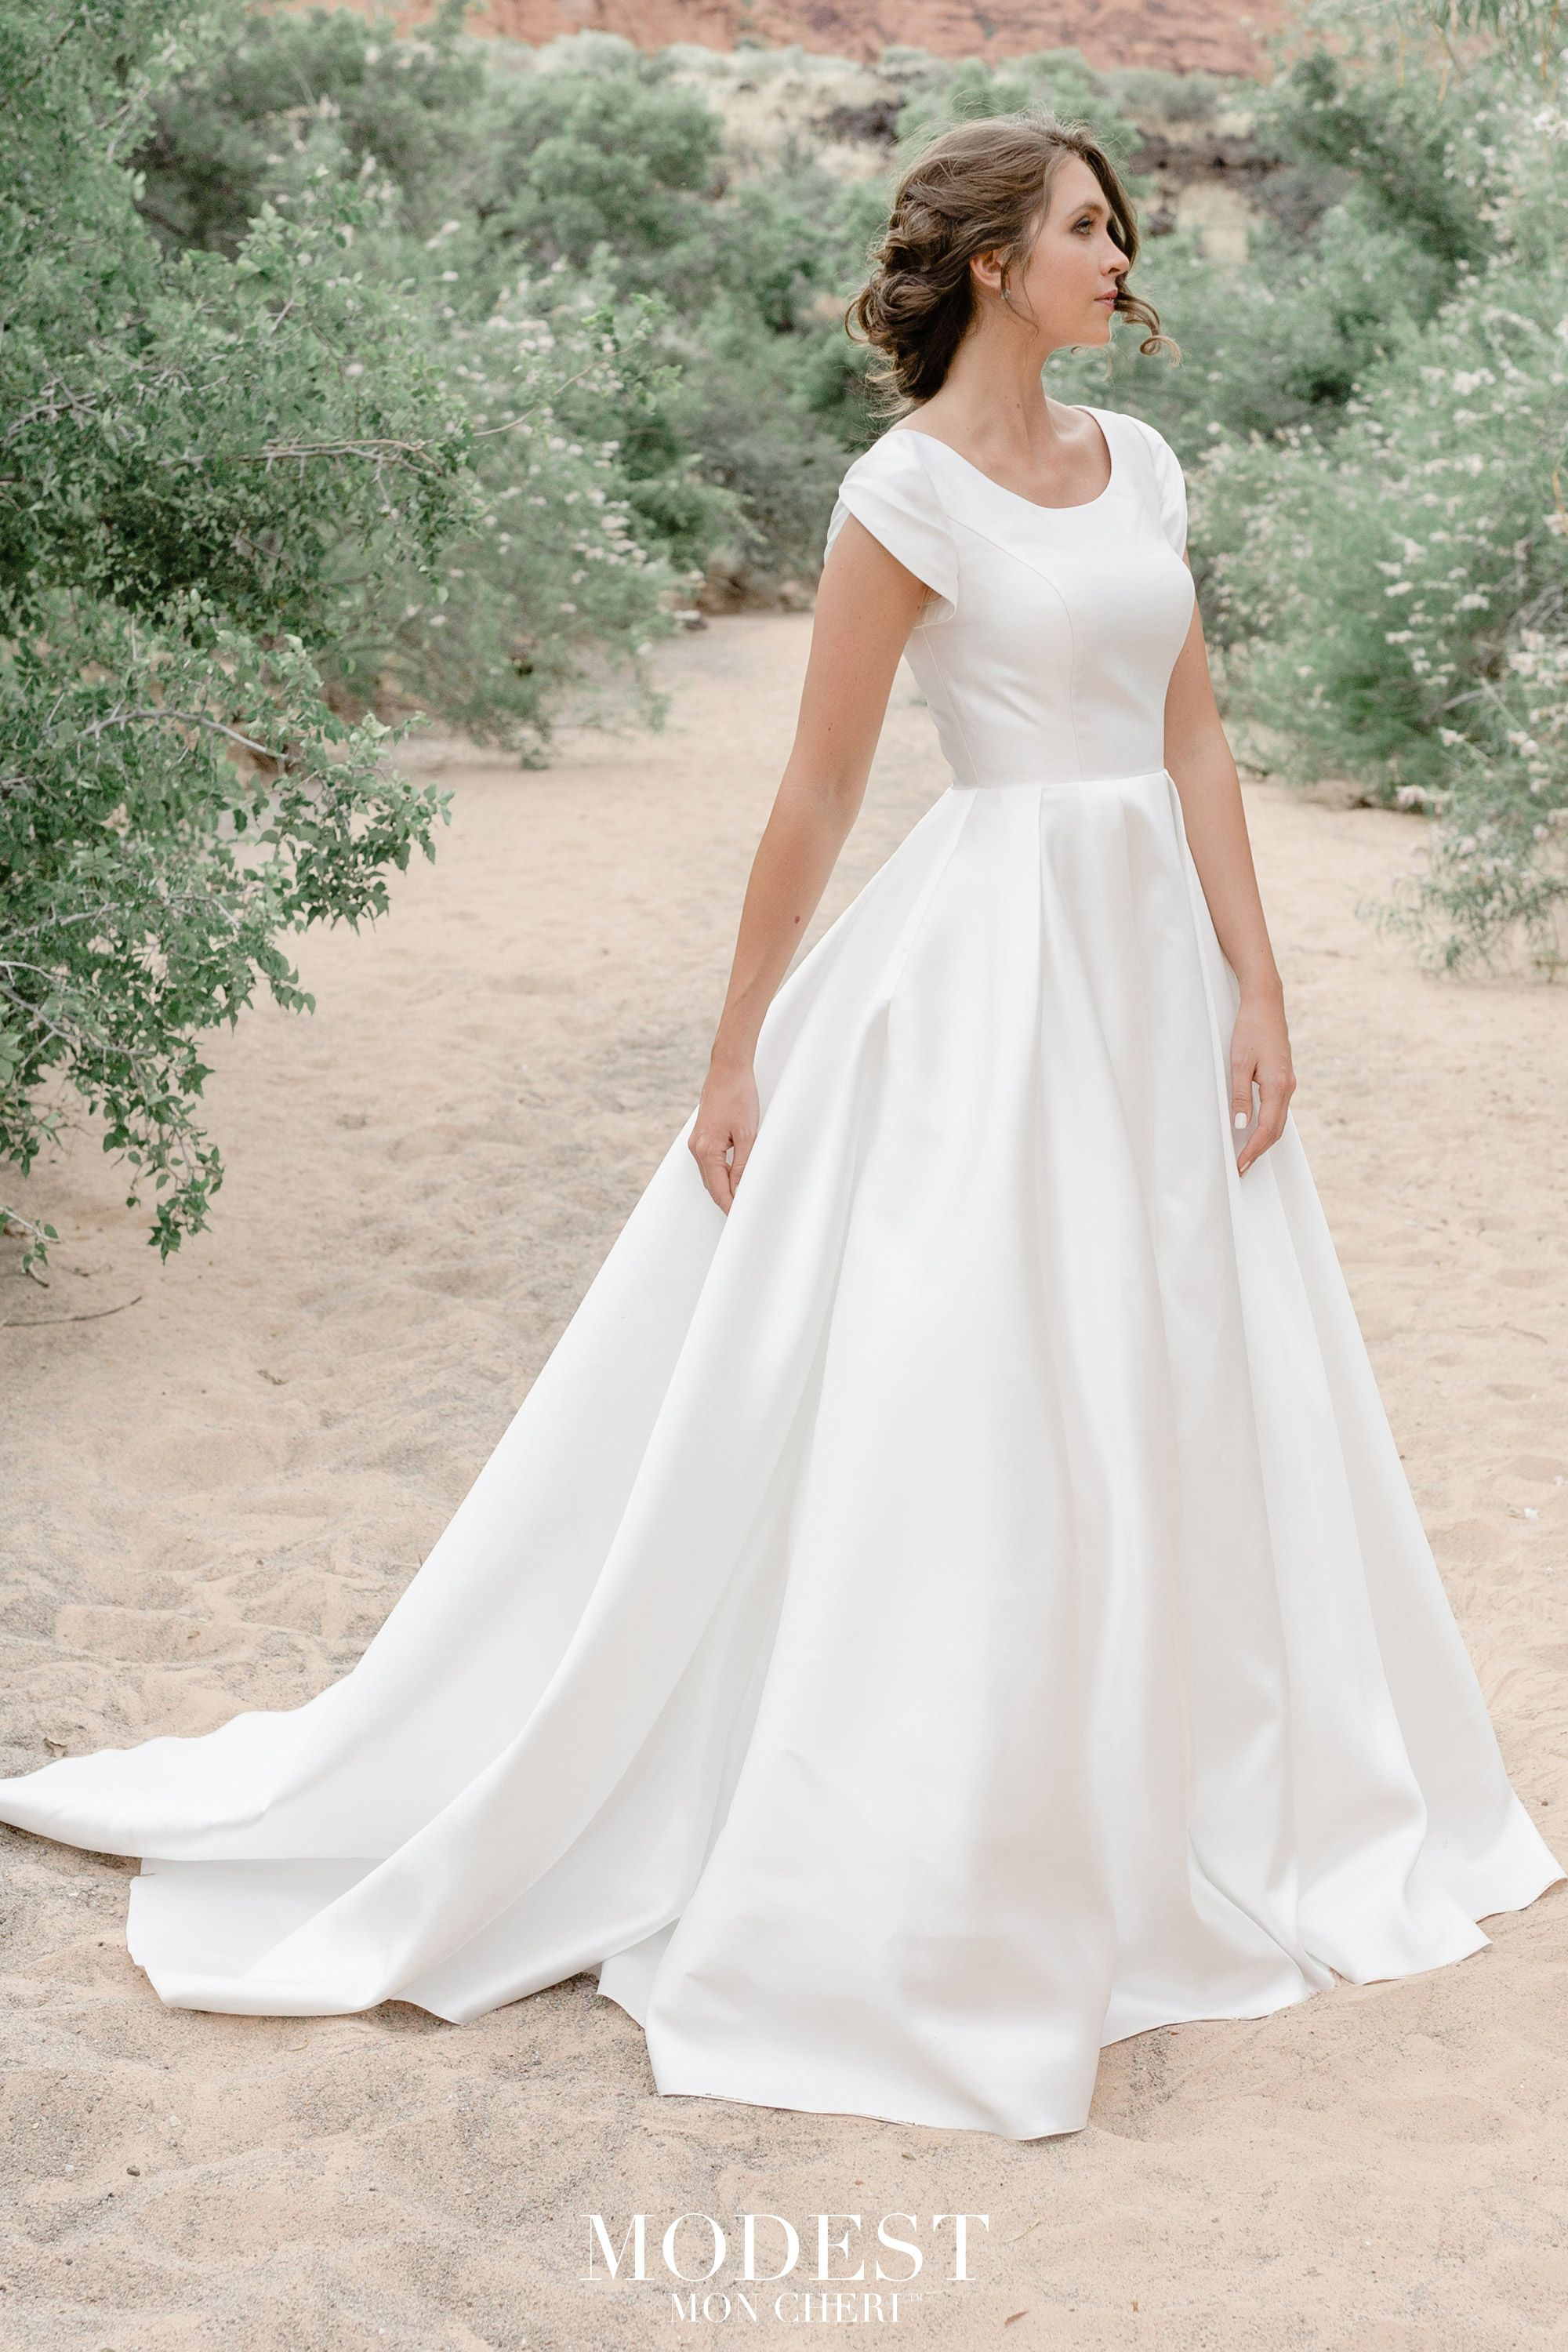 MODEST BY MON CHERI SPRING COLLECTION 2020 TR12033